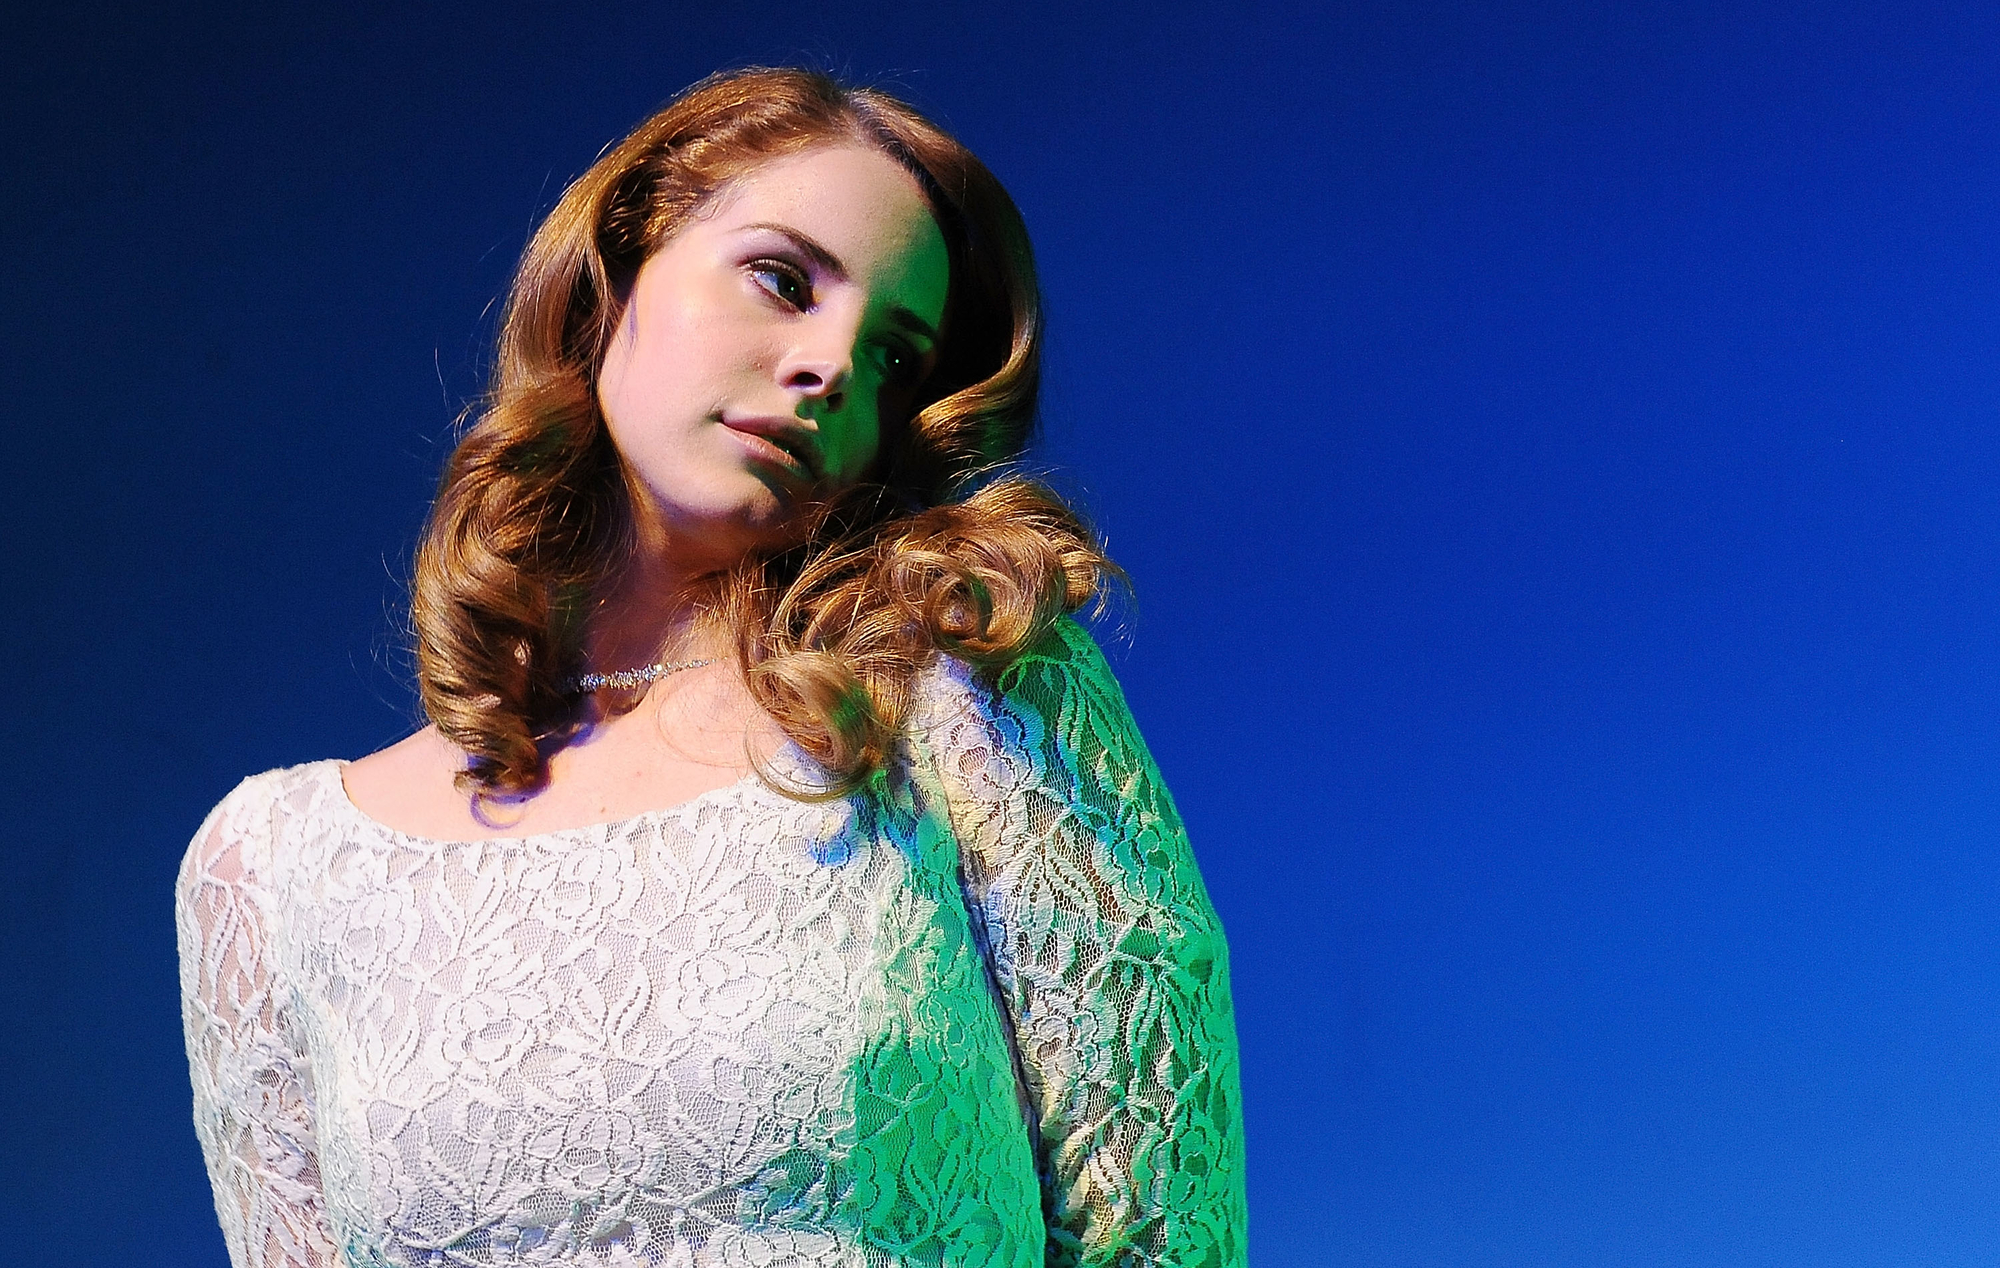 Watch Lana Del Rey perform with Lucy Dacus and Best Coast during Chicago tour stop